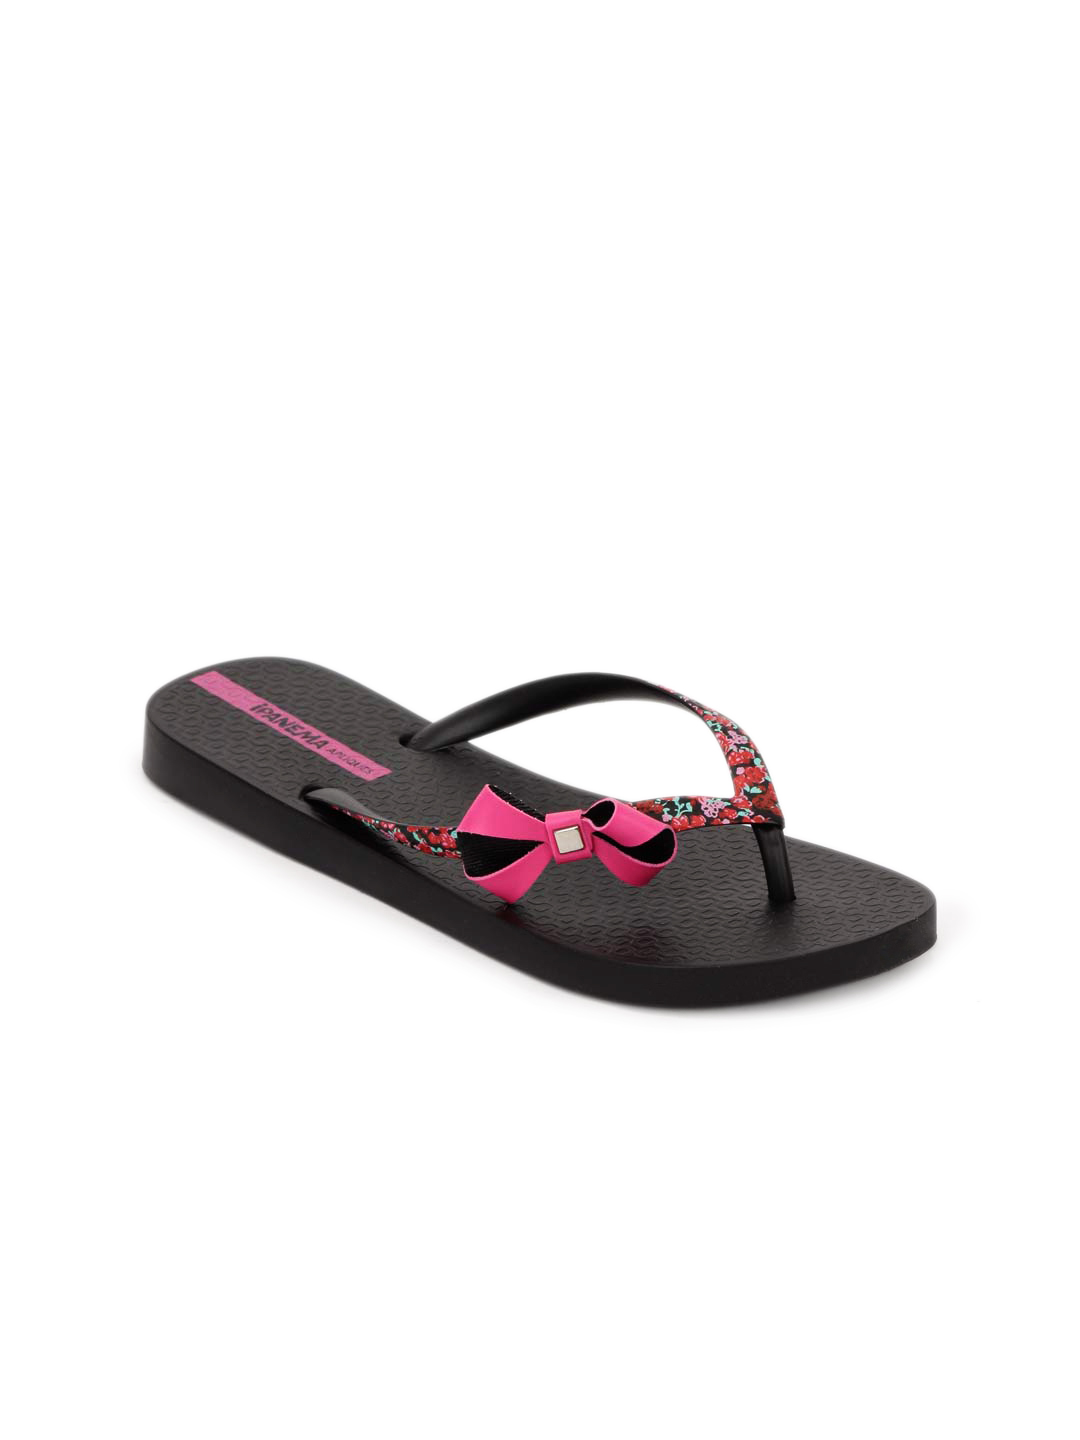 iPanema Women Black Flip Flops